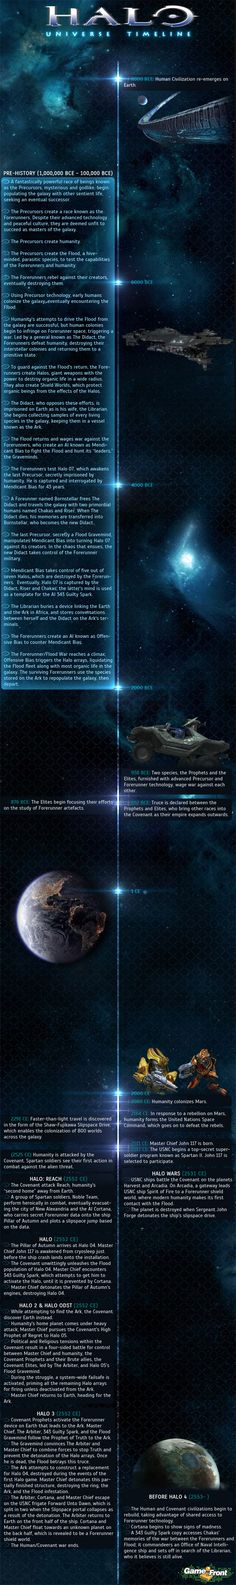 Halo universe timeline  For anyone who loves halo, or wants to learn more, here you go!